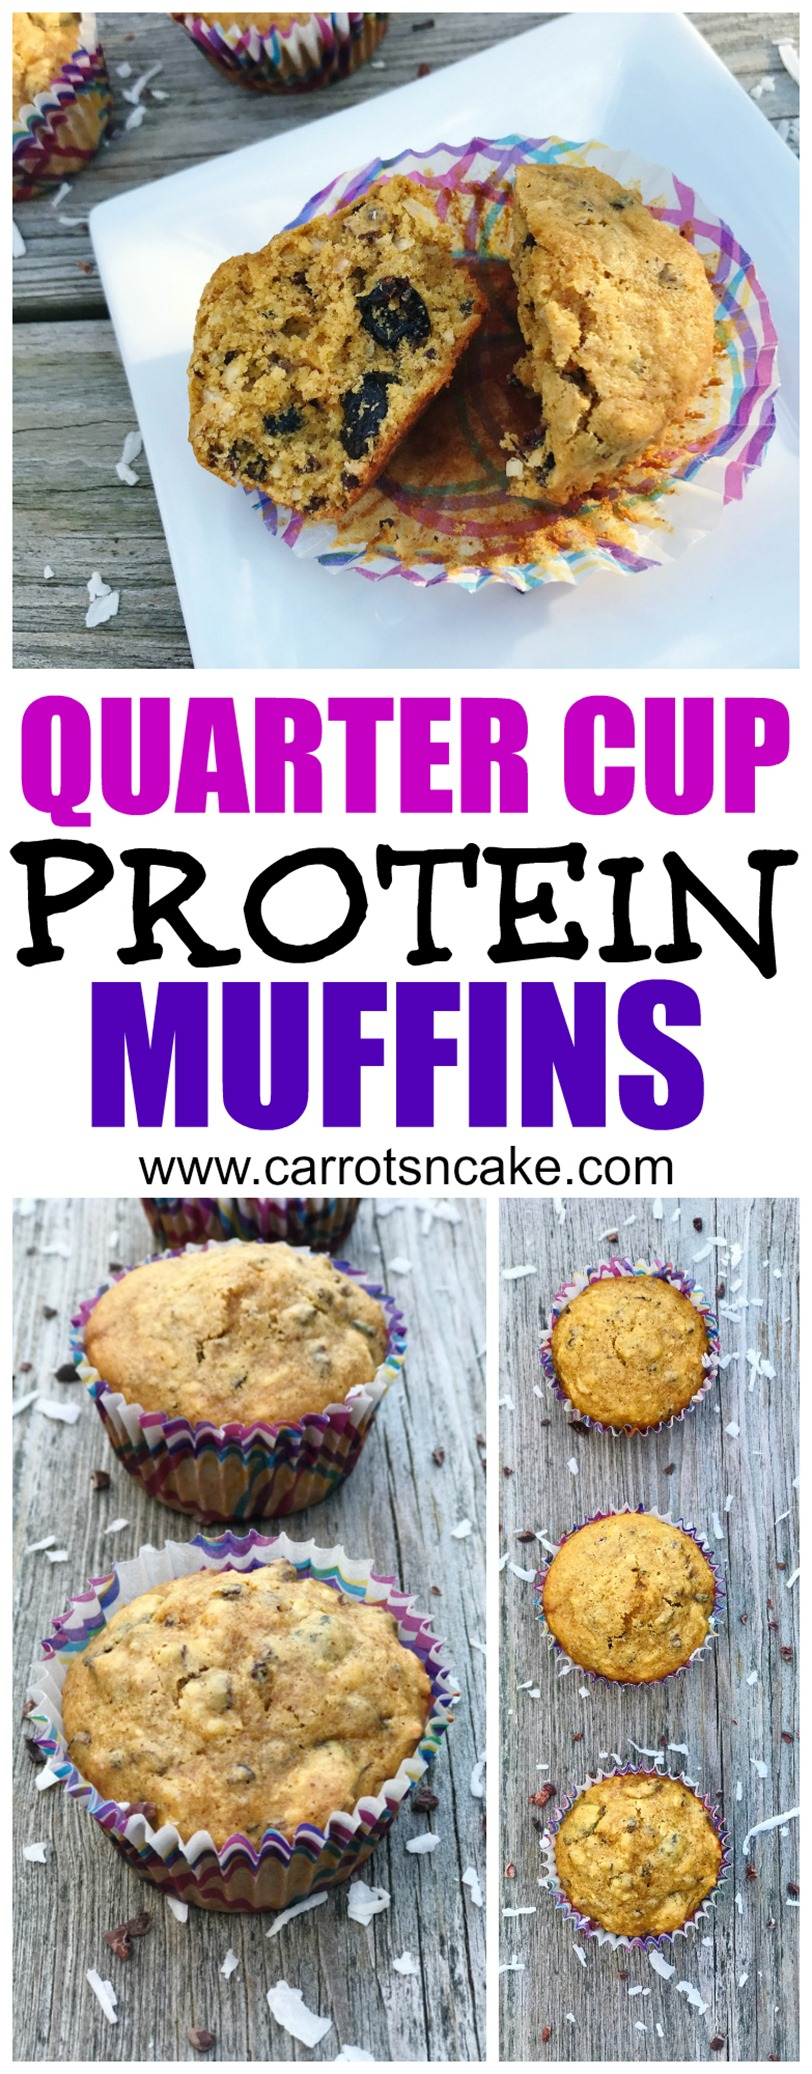 QUARTER CUP PROTEIN MUFFINS